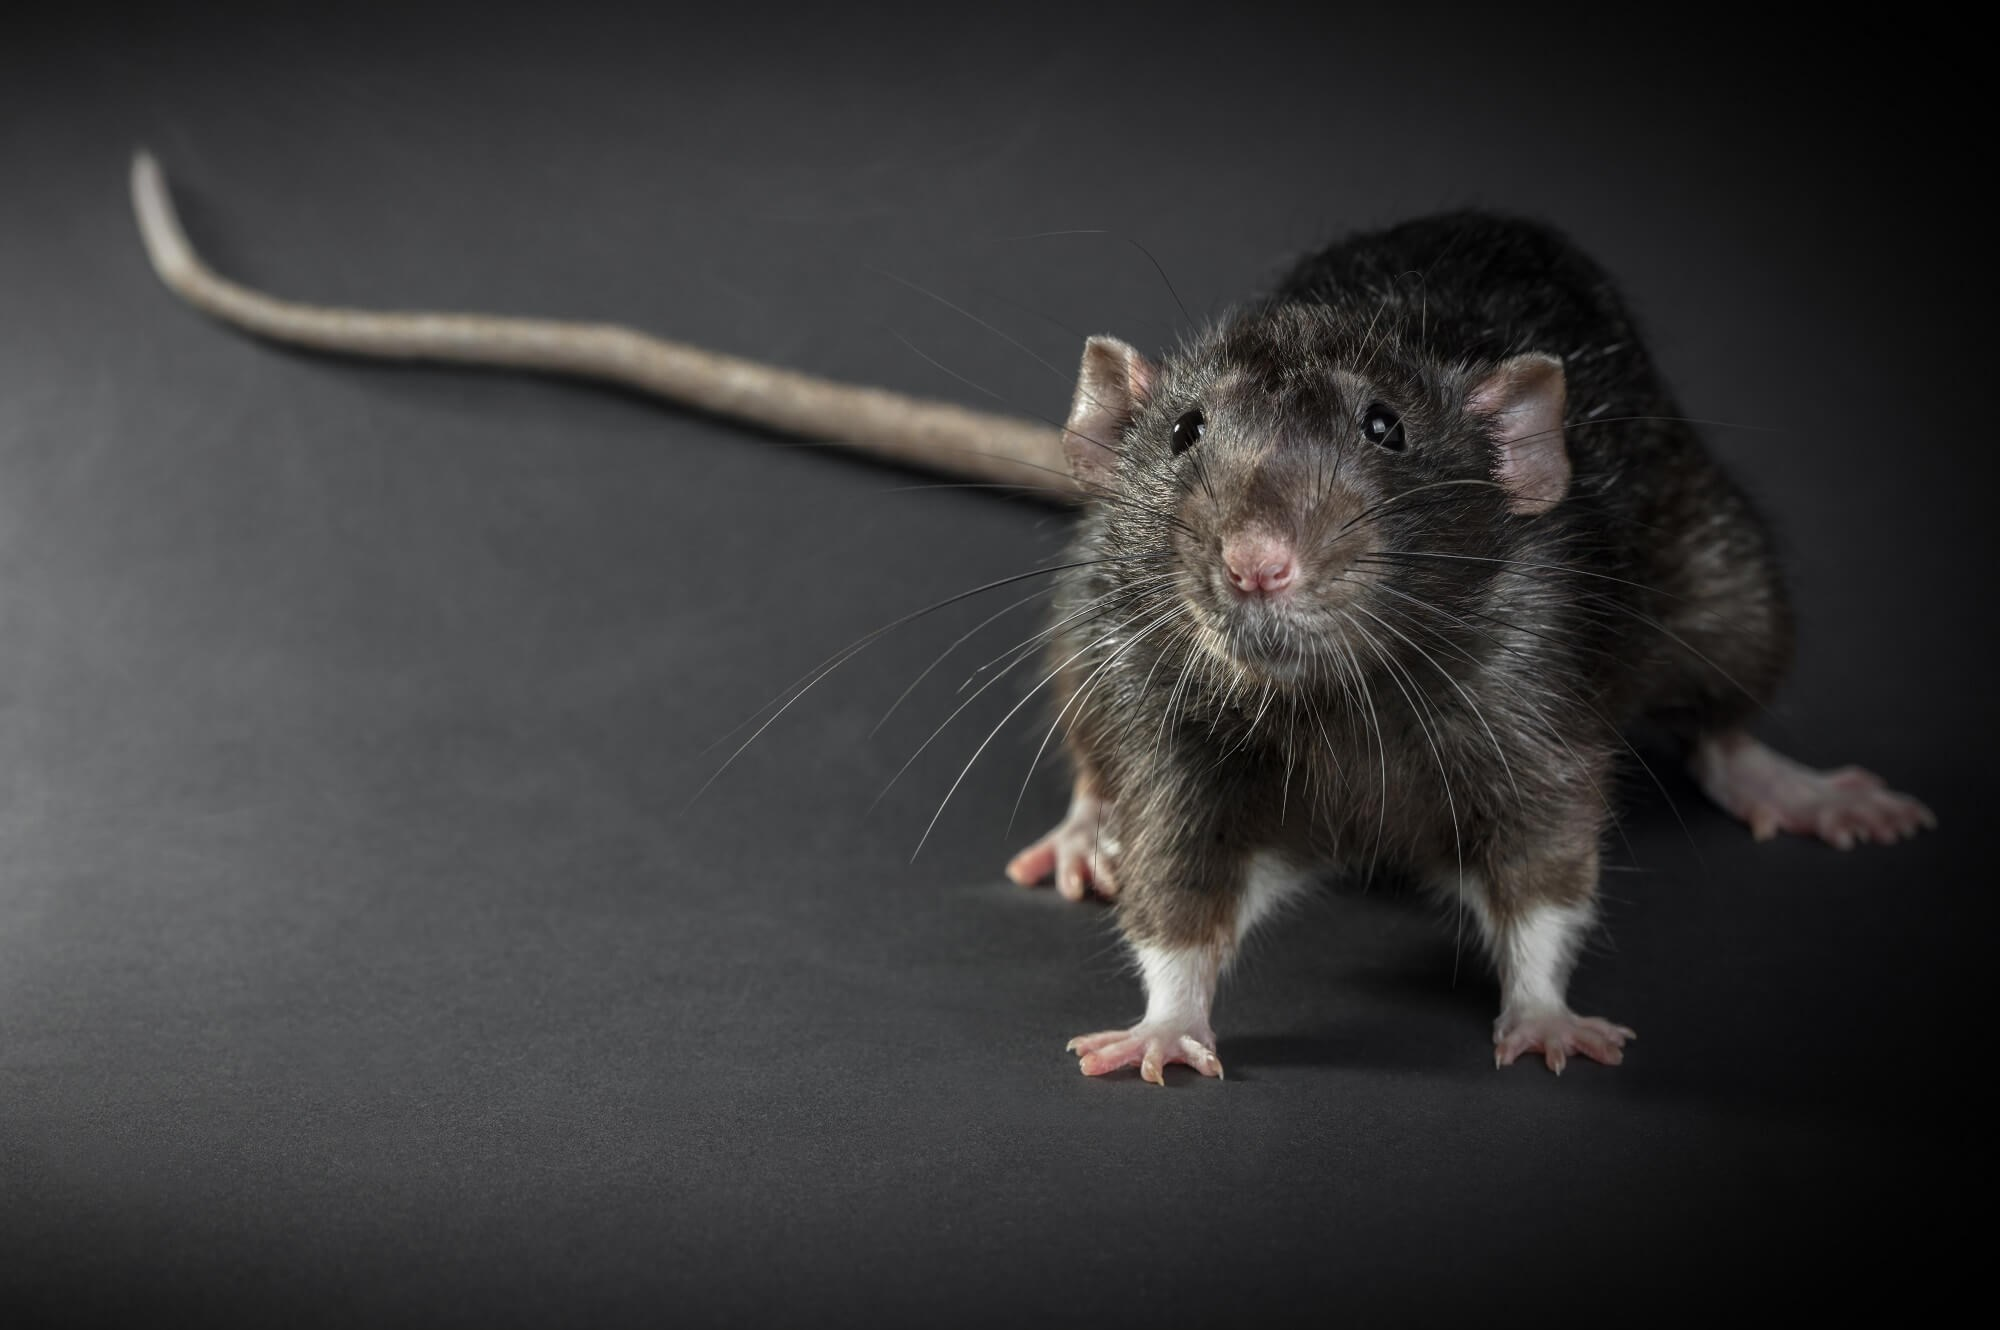 CDC: First Case of Rat-Borne Andes Virus Diagnosed in the US